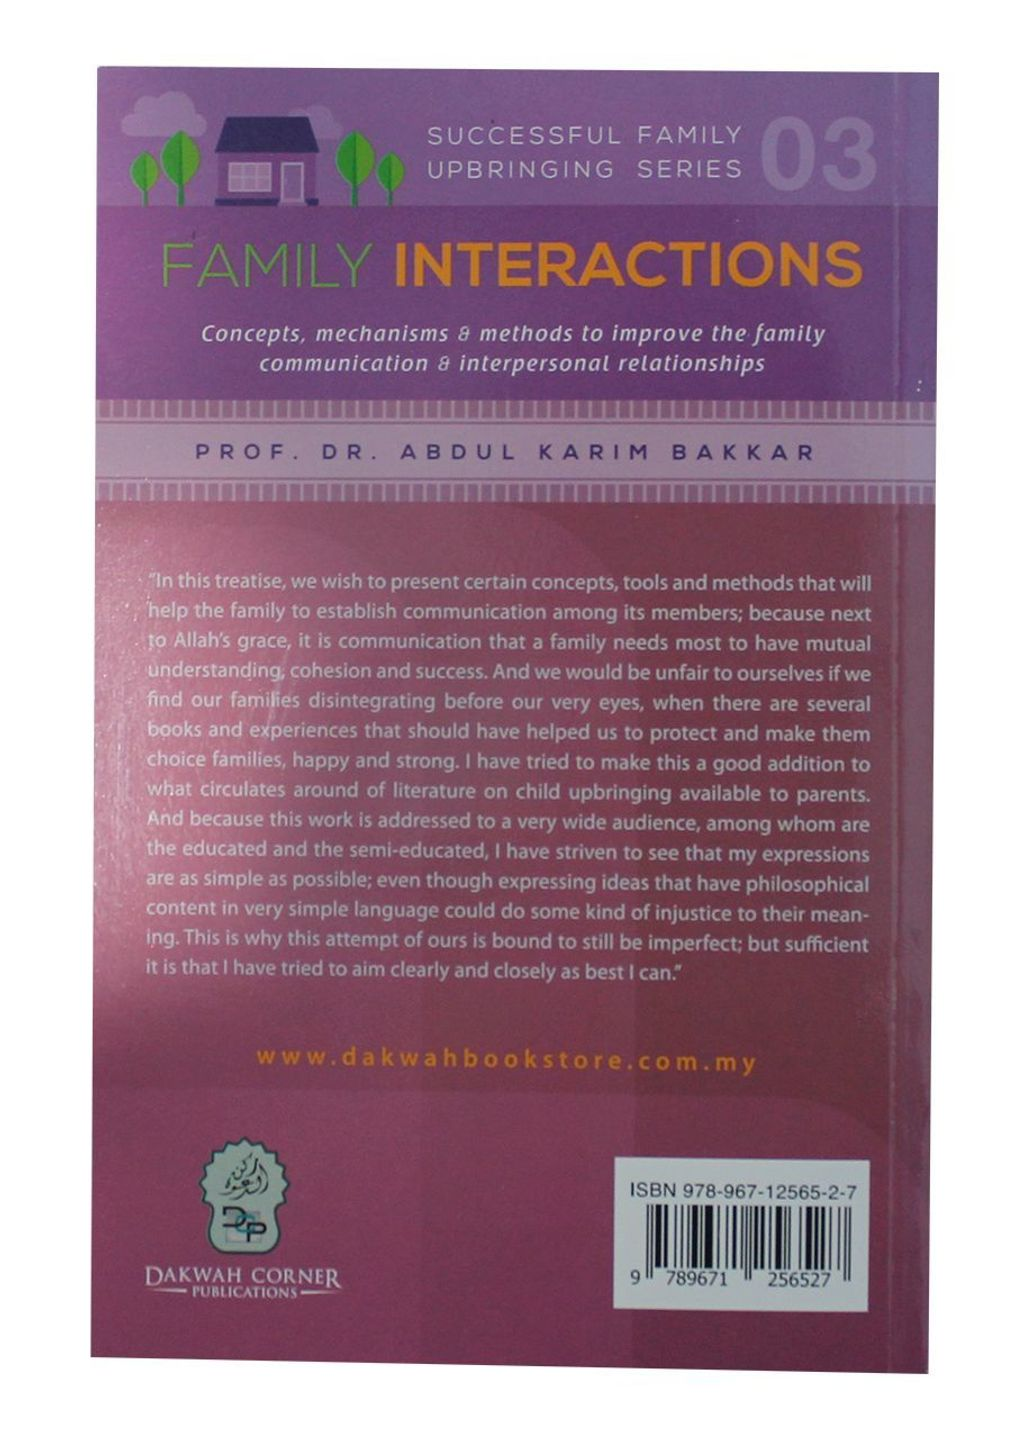 Successful-Family-Upbringing-Series-03-–-Family-Interactions-b.jpg